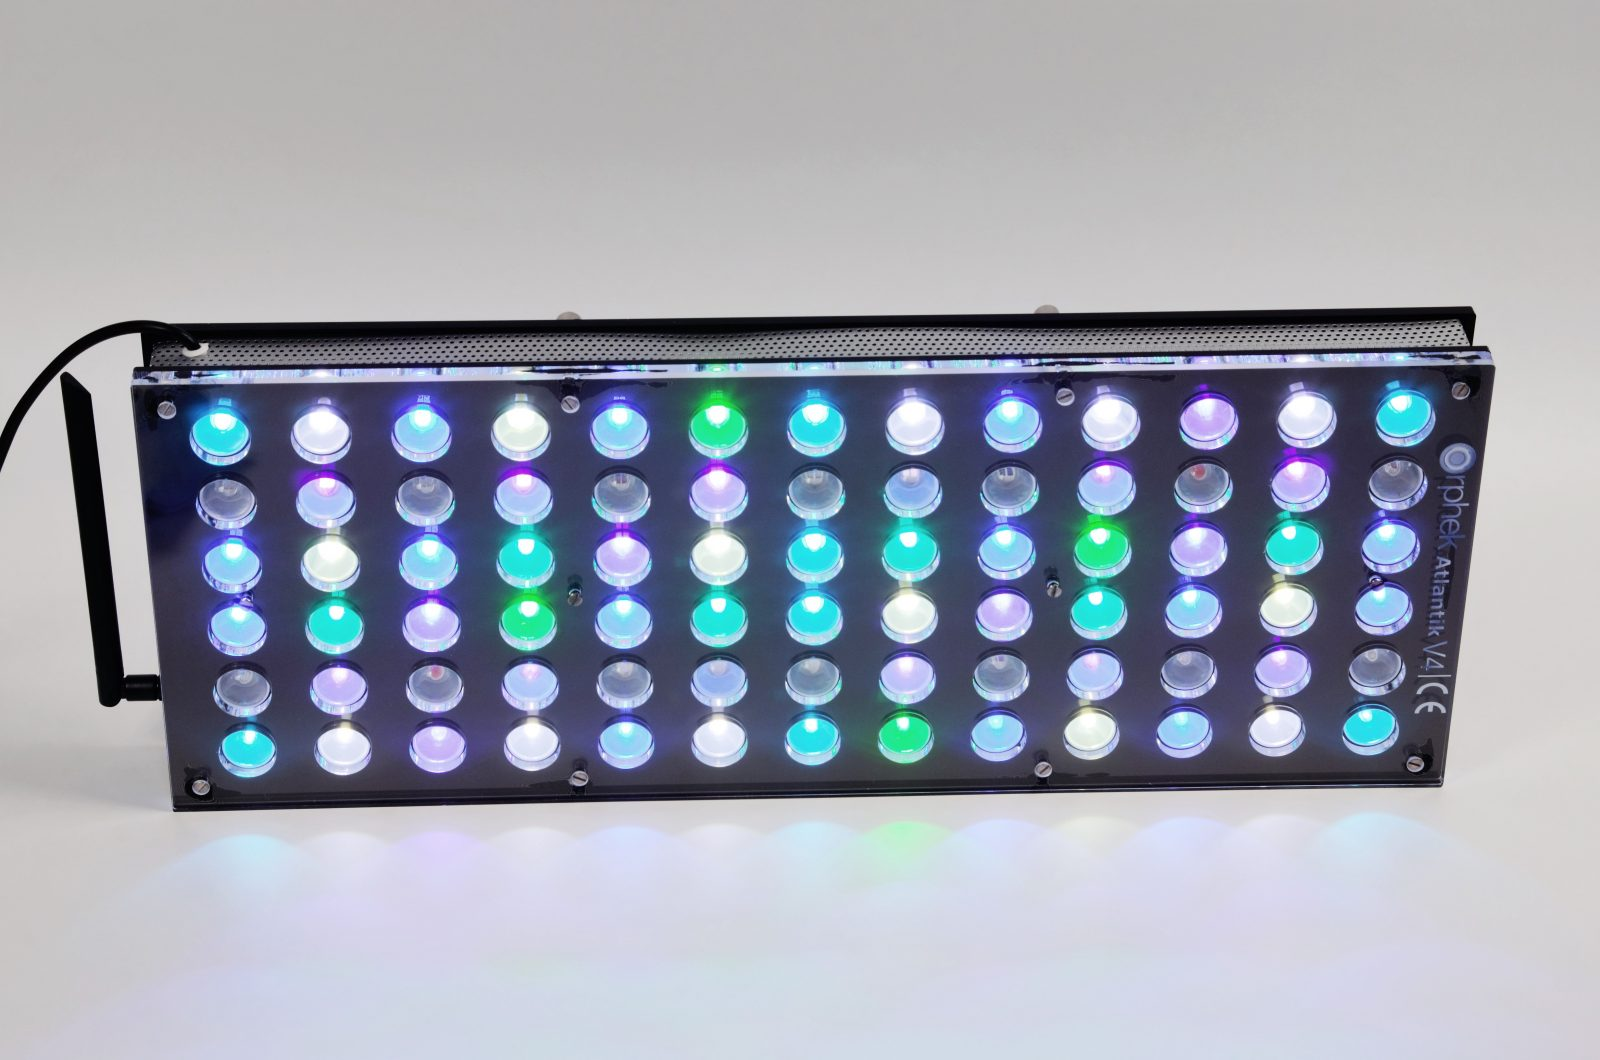 Orphek-Aquarium-LED-Lighting-Reef-Atlantik-V4-light-on-channel 1+2+3